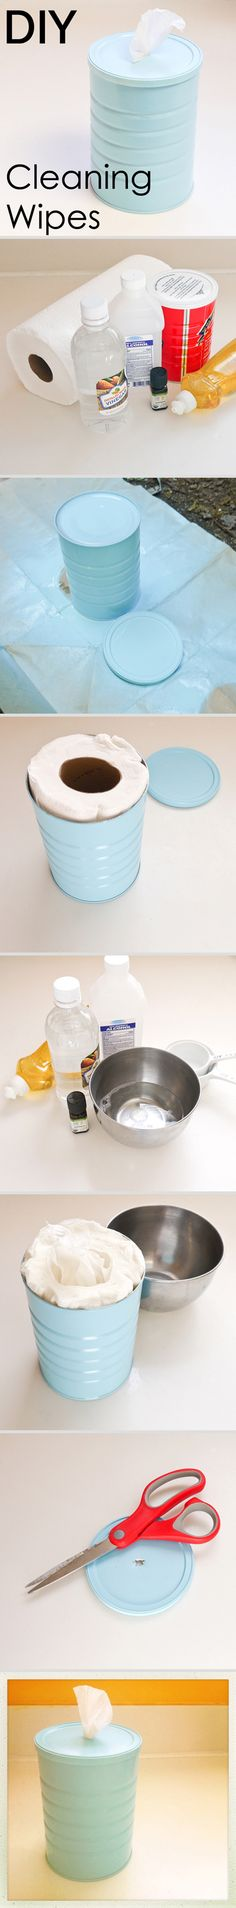 How to make your own cleaning wipes and canister. You will save a ton of money! save money on babies, g wipes Homemade Cleaning Wipes, Homemade Cleaning Supplies, Cleaning Recipes, Cleaners Homemade, Diy Cleaners, Cleaning Hacks, Natural Cleaners, Tips & Tricks, Natural Cleaning Products